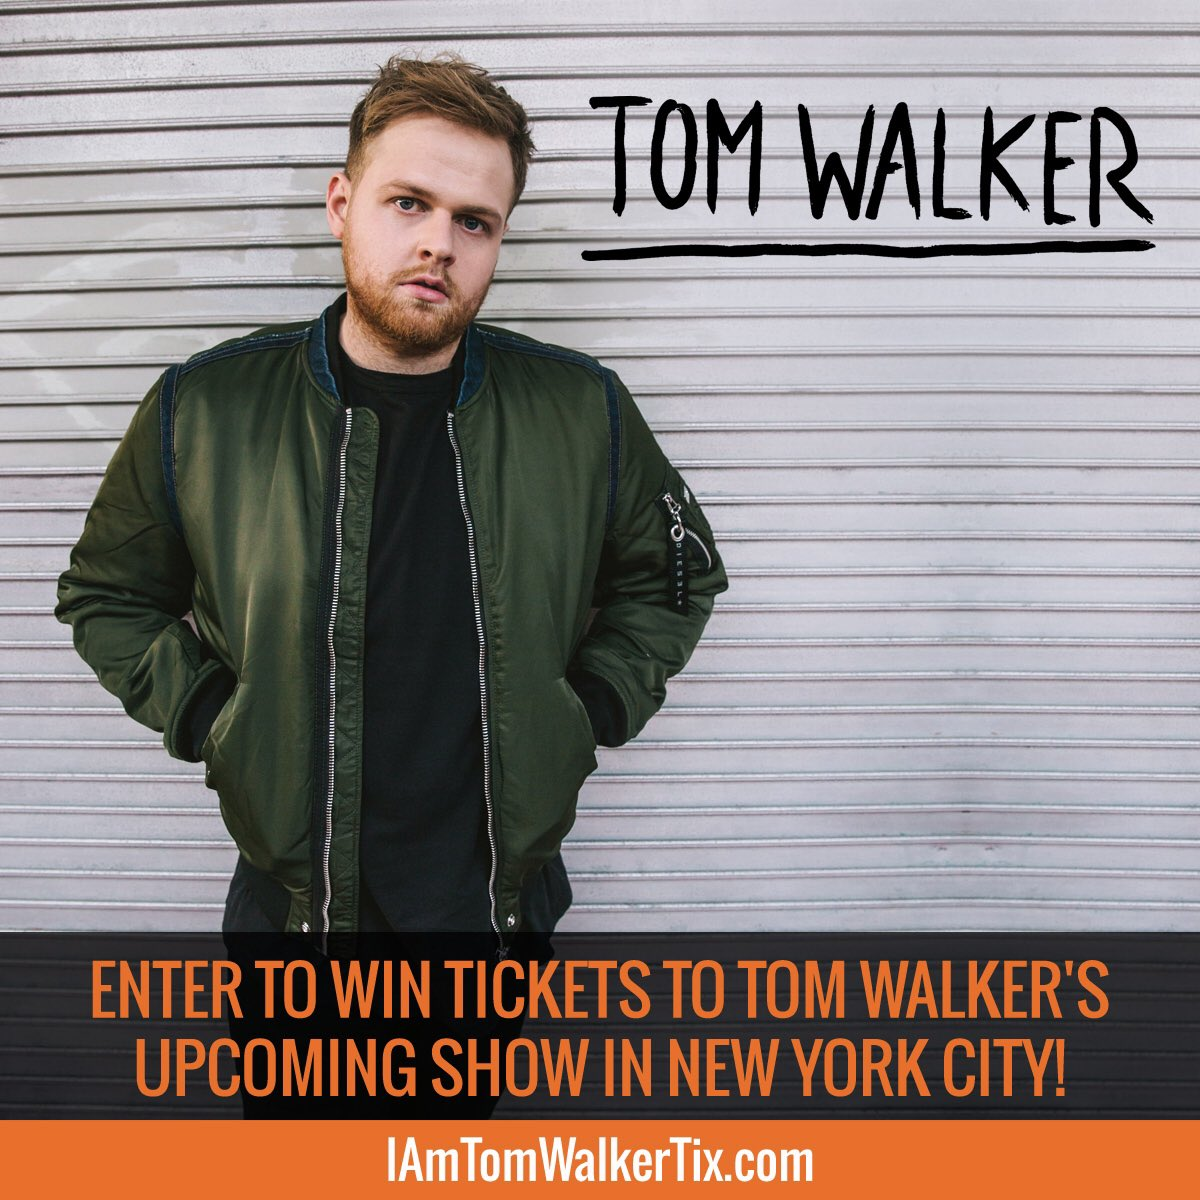 Win a pair of tkts ���� to see @IamTomWalker in #NYC! ��Deets at ��(https://t.co/CohOwjeY1C) #beEPIC #NYC #LudlowHouse https://t.co/9kz4GsKDrh